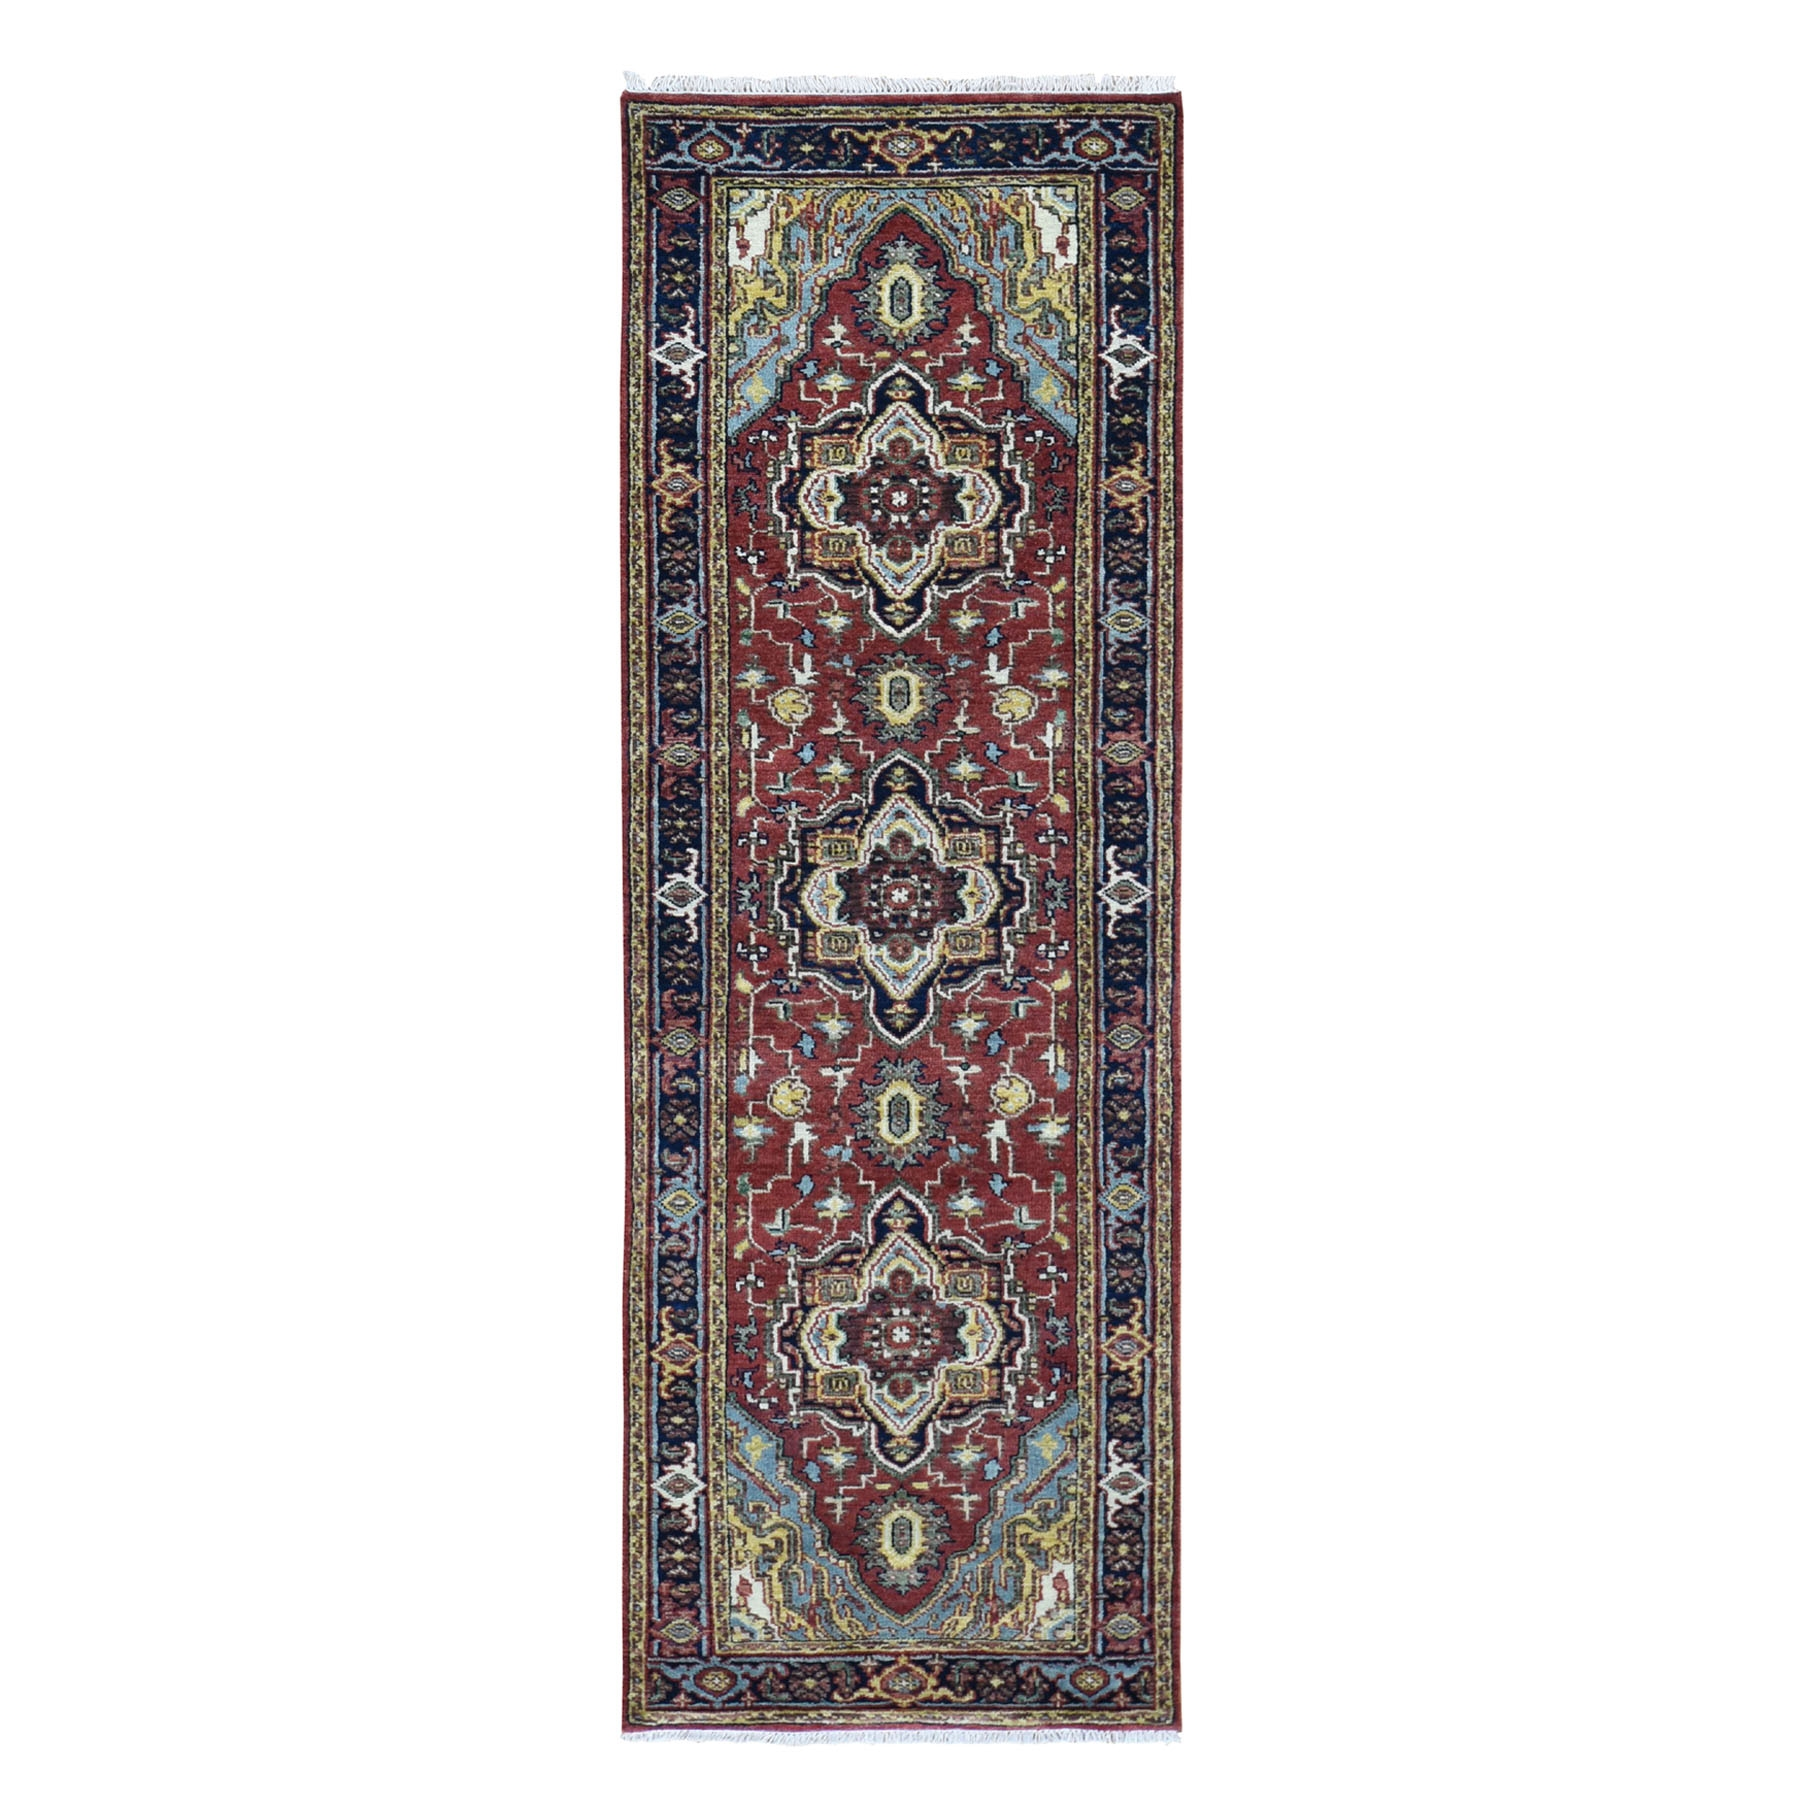 "2'5""X8' Red Heriz Revival Pure Wool Hand-Knotted Oriental Runner Rug moad8076"